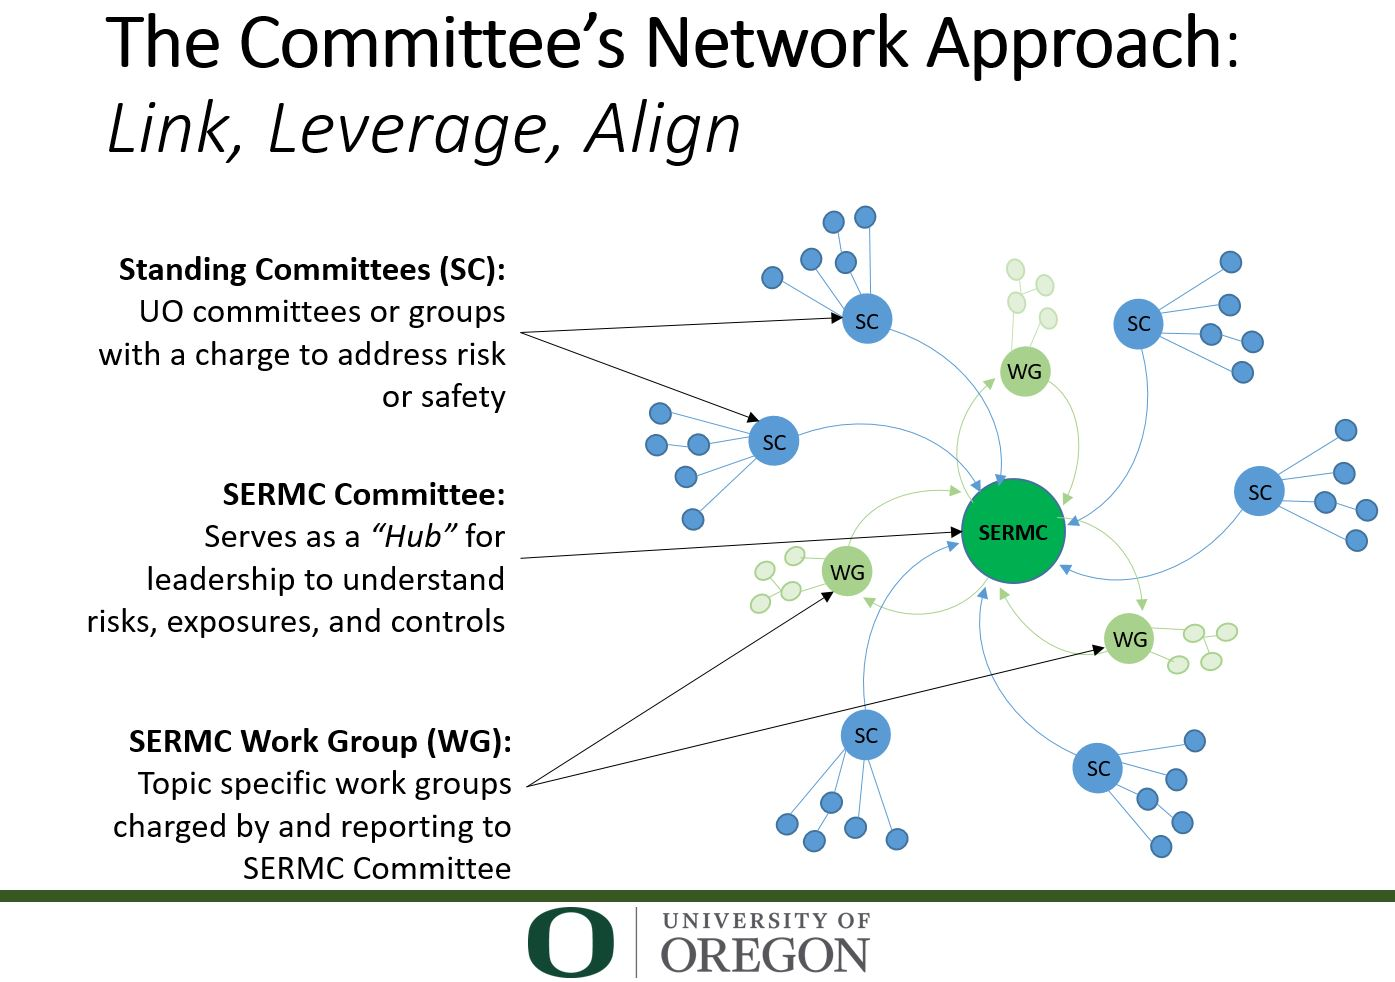 SERMC standing committees and work group graphic